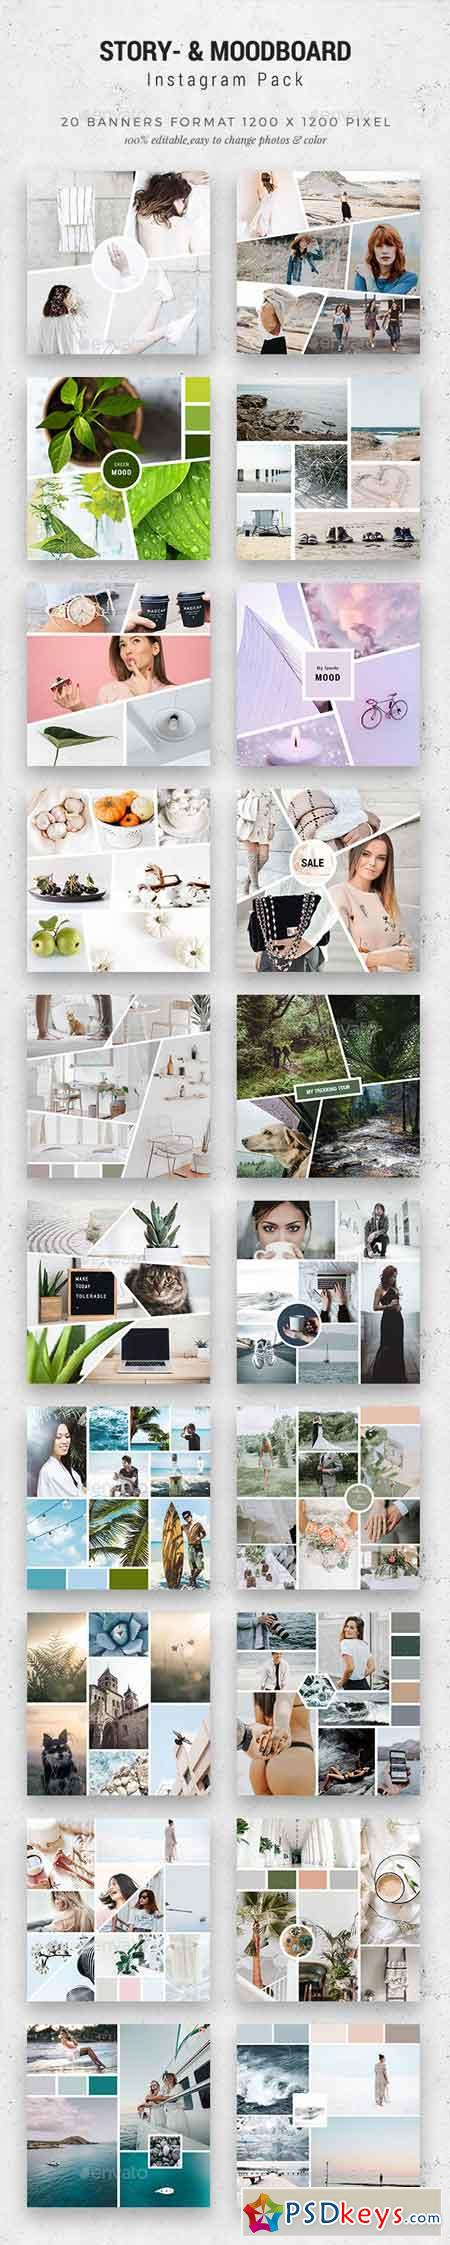 Story-Moodboards for Instagram 22729550